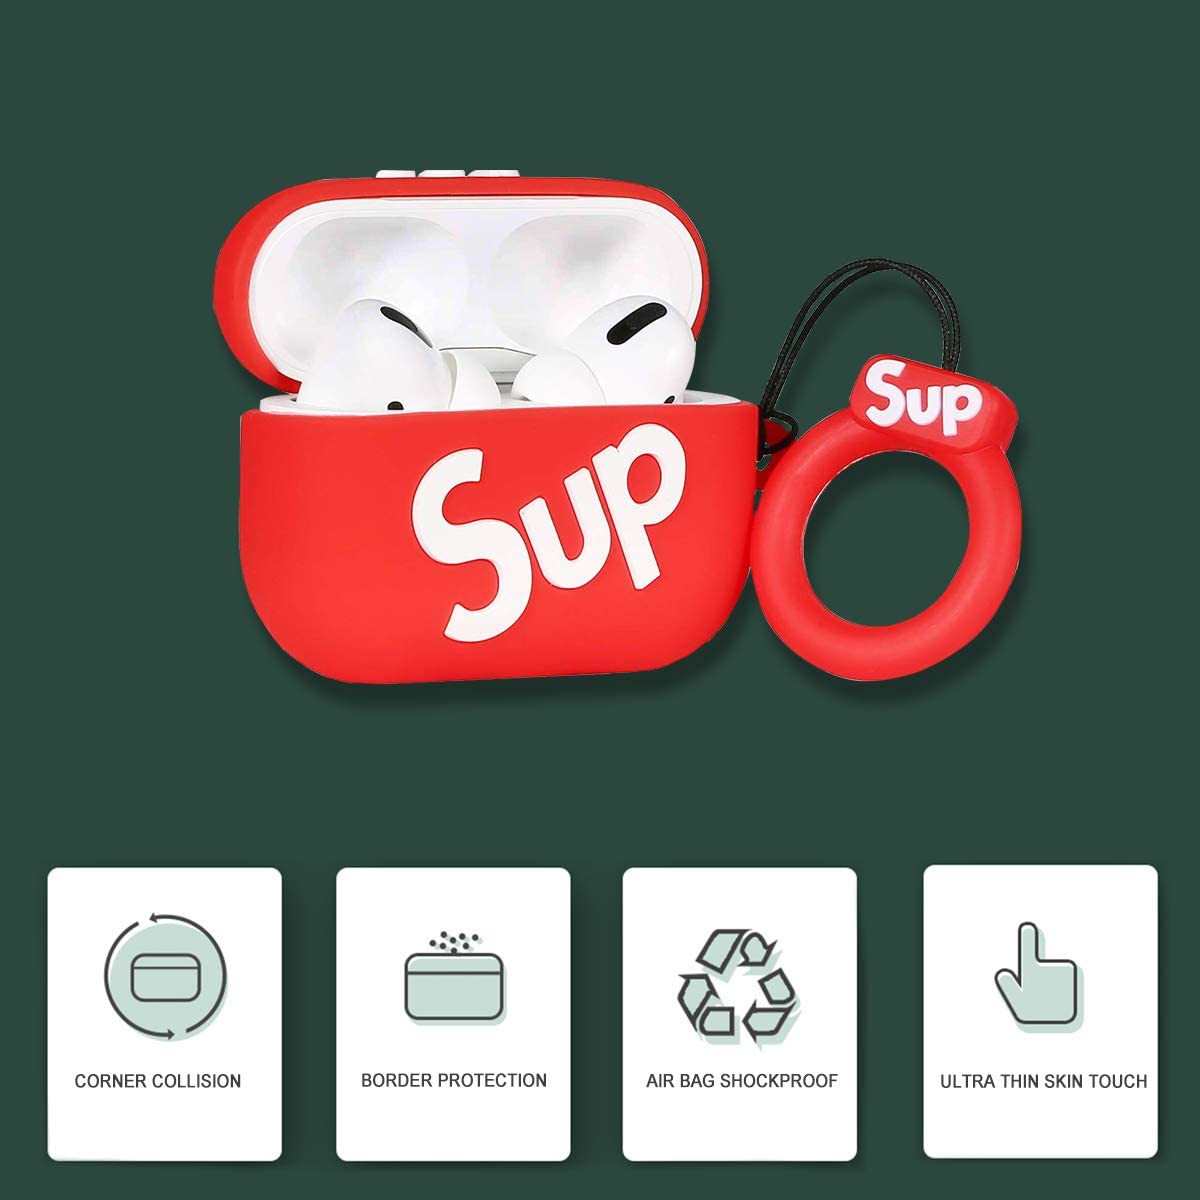 Airpods Pro Red Sup Case,3D Soft Silicone Protective Cover with Keychain,Sport Fun Cool Stylish Fashion,Shockproof,Hingeless,Slim-Fit,Washable and Anti Scratching.Compatible for Airpods Pro//Airpods 3.